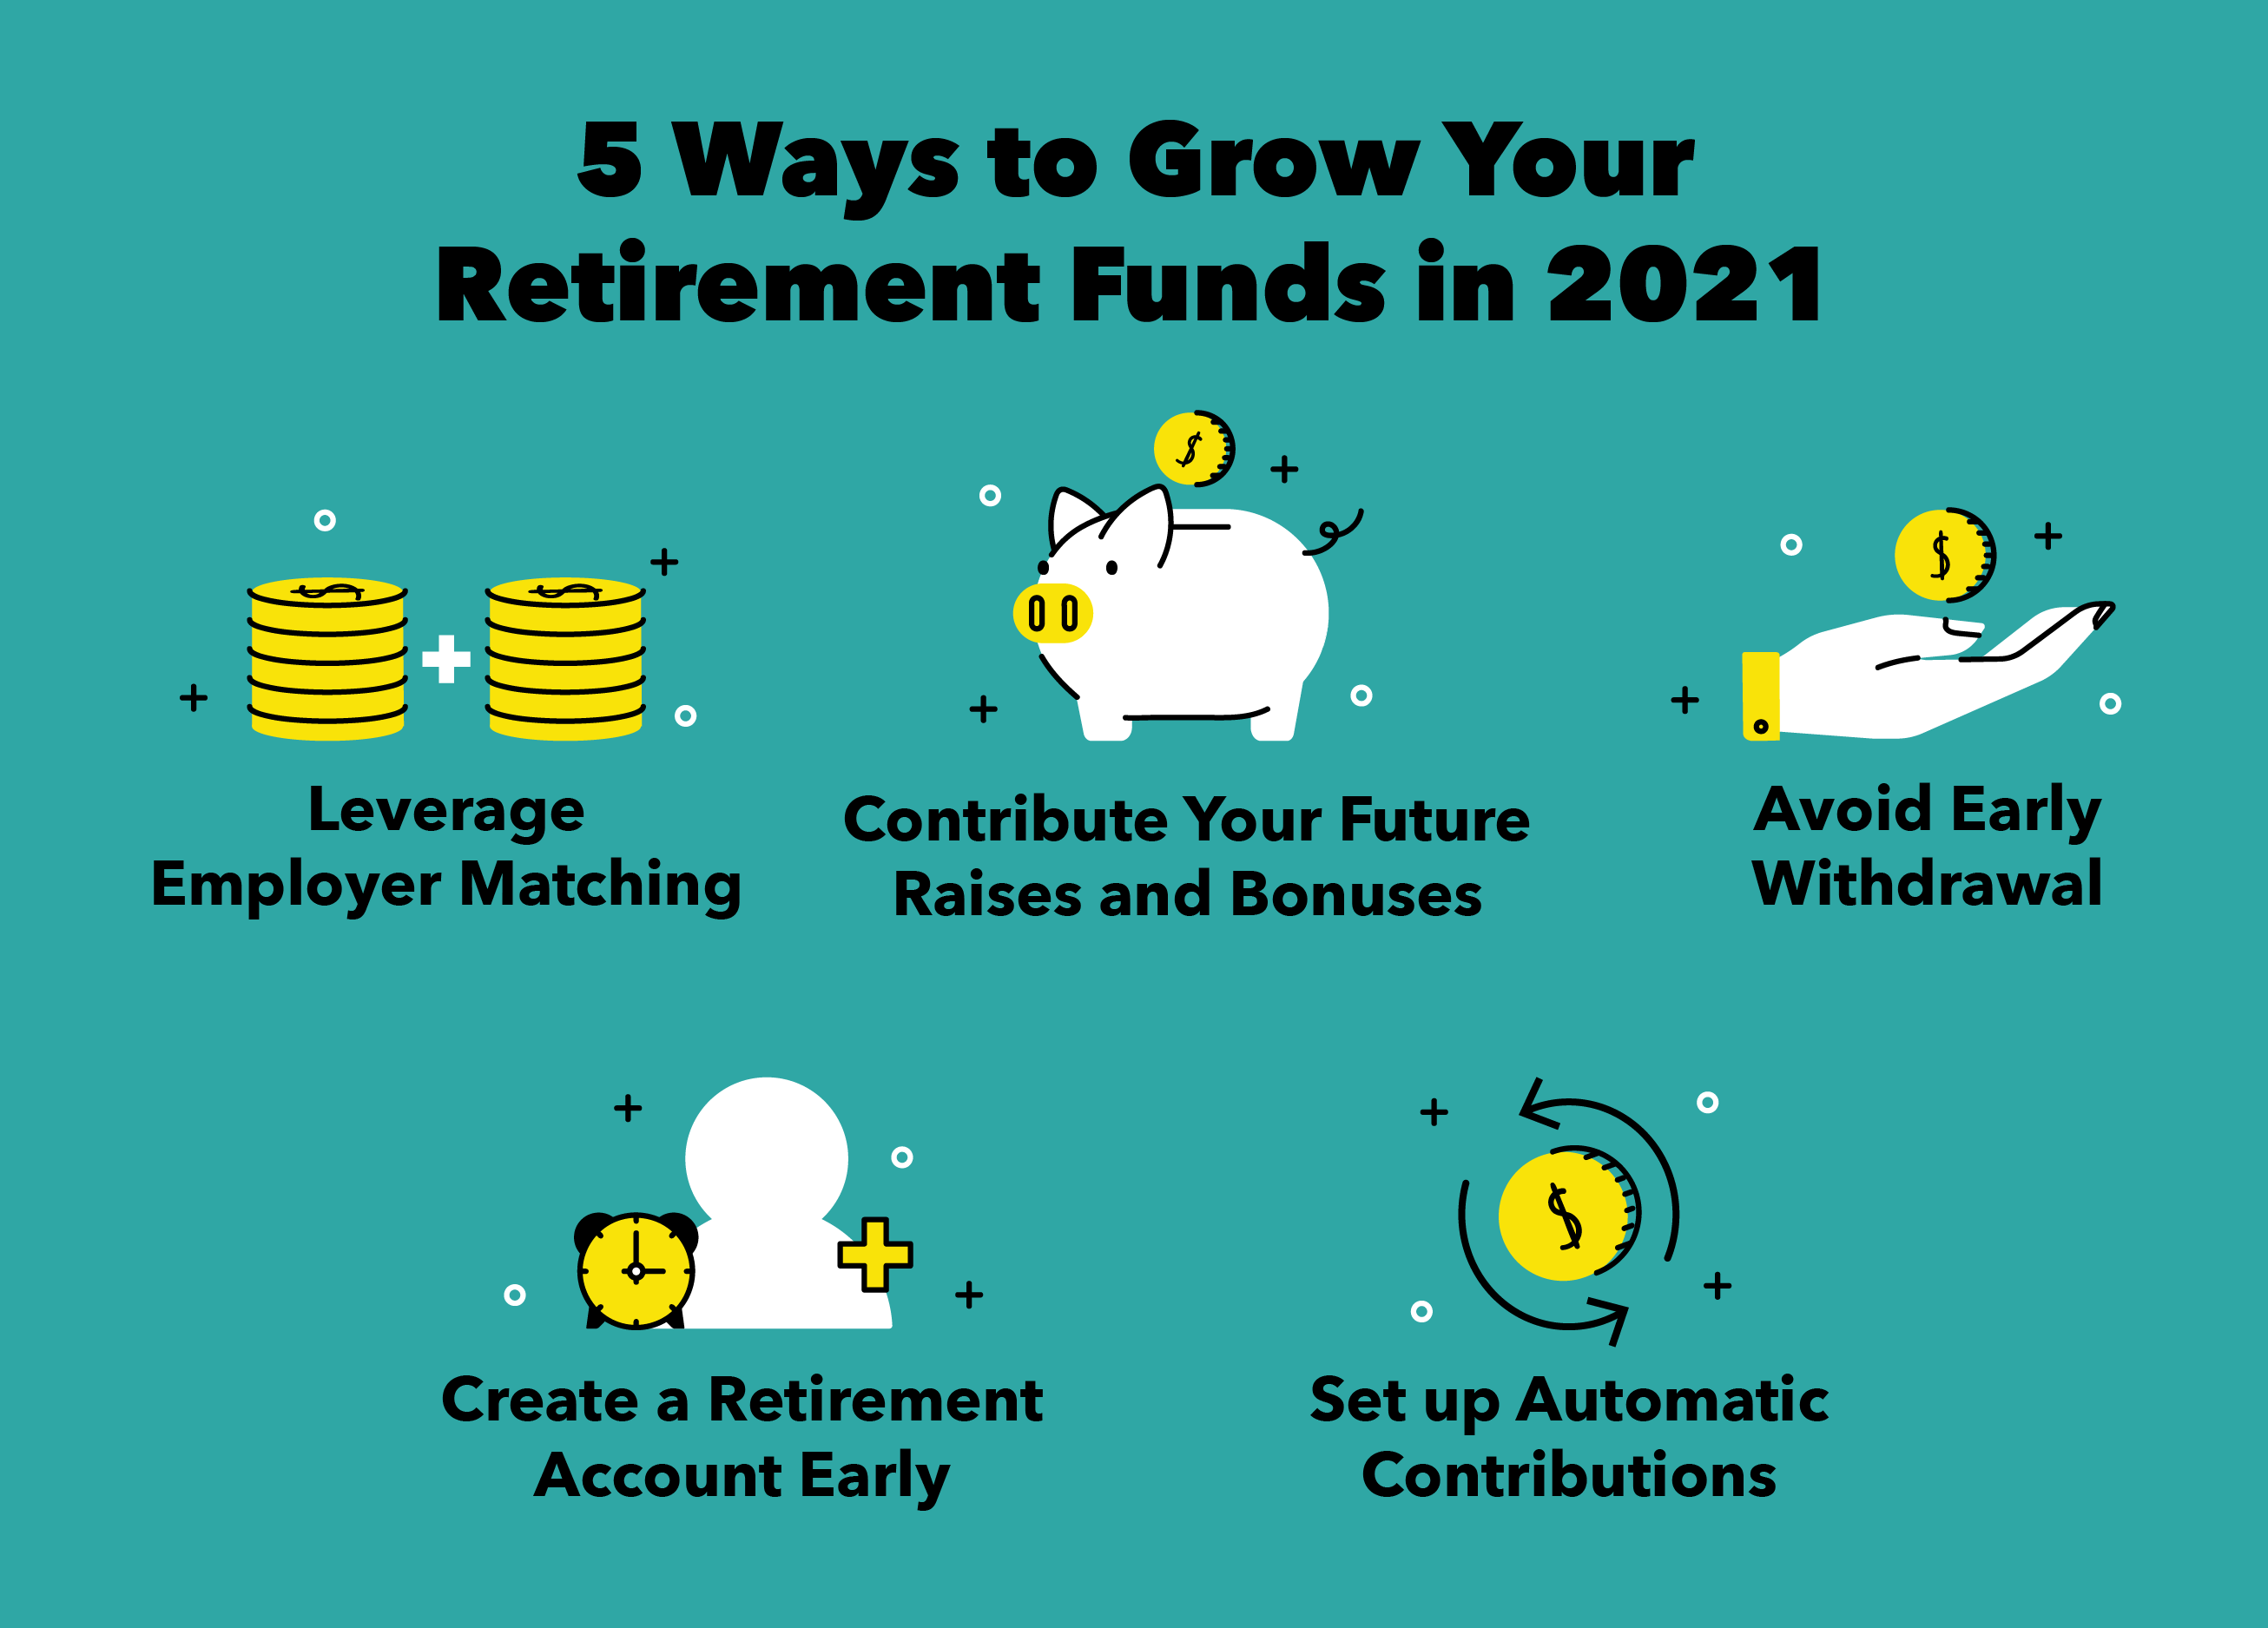 5 Ways to Grow Your Retirement Savings